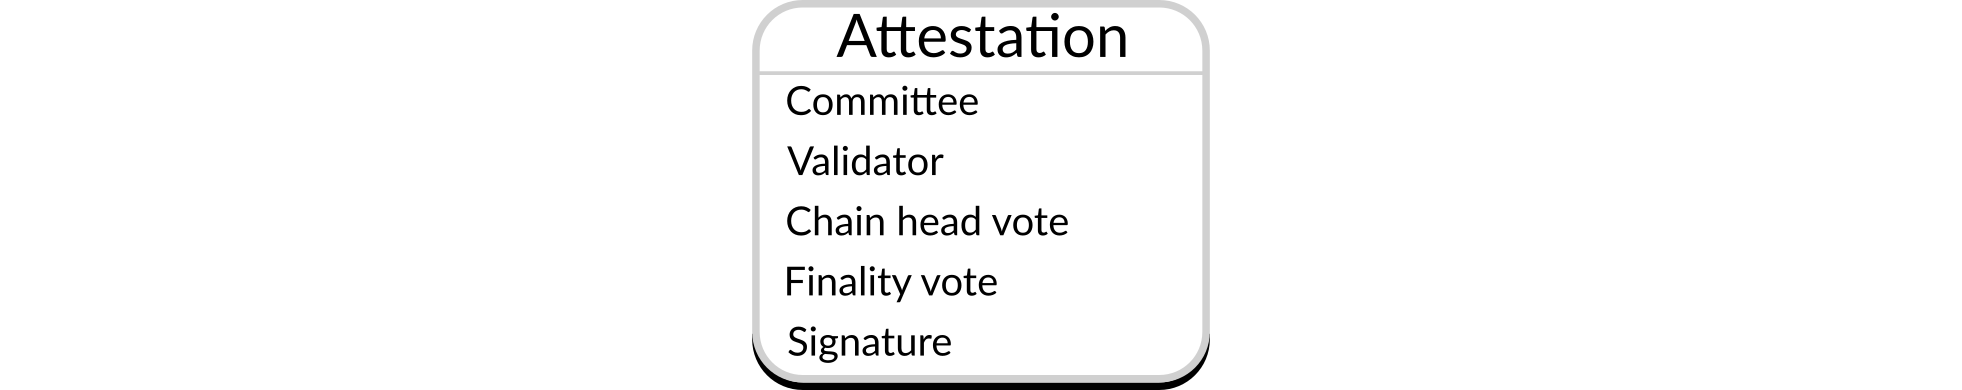 Structure of an attestation